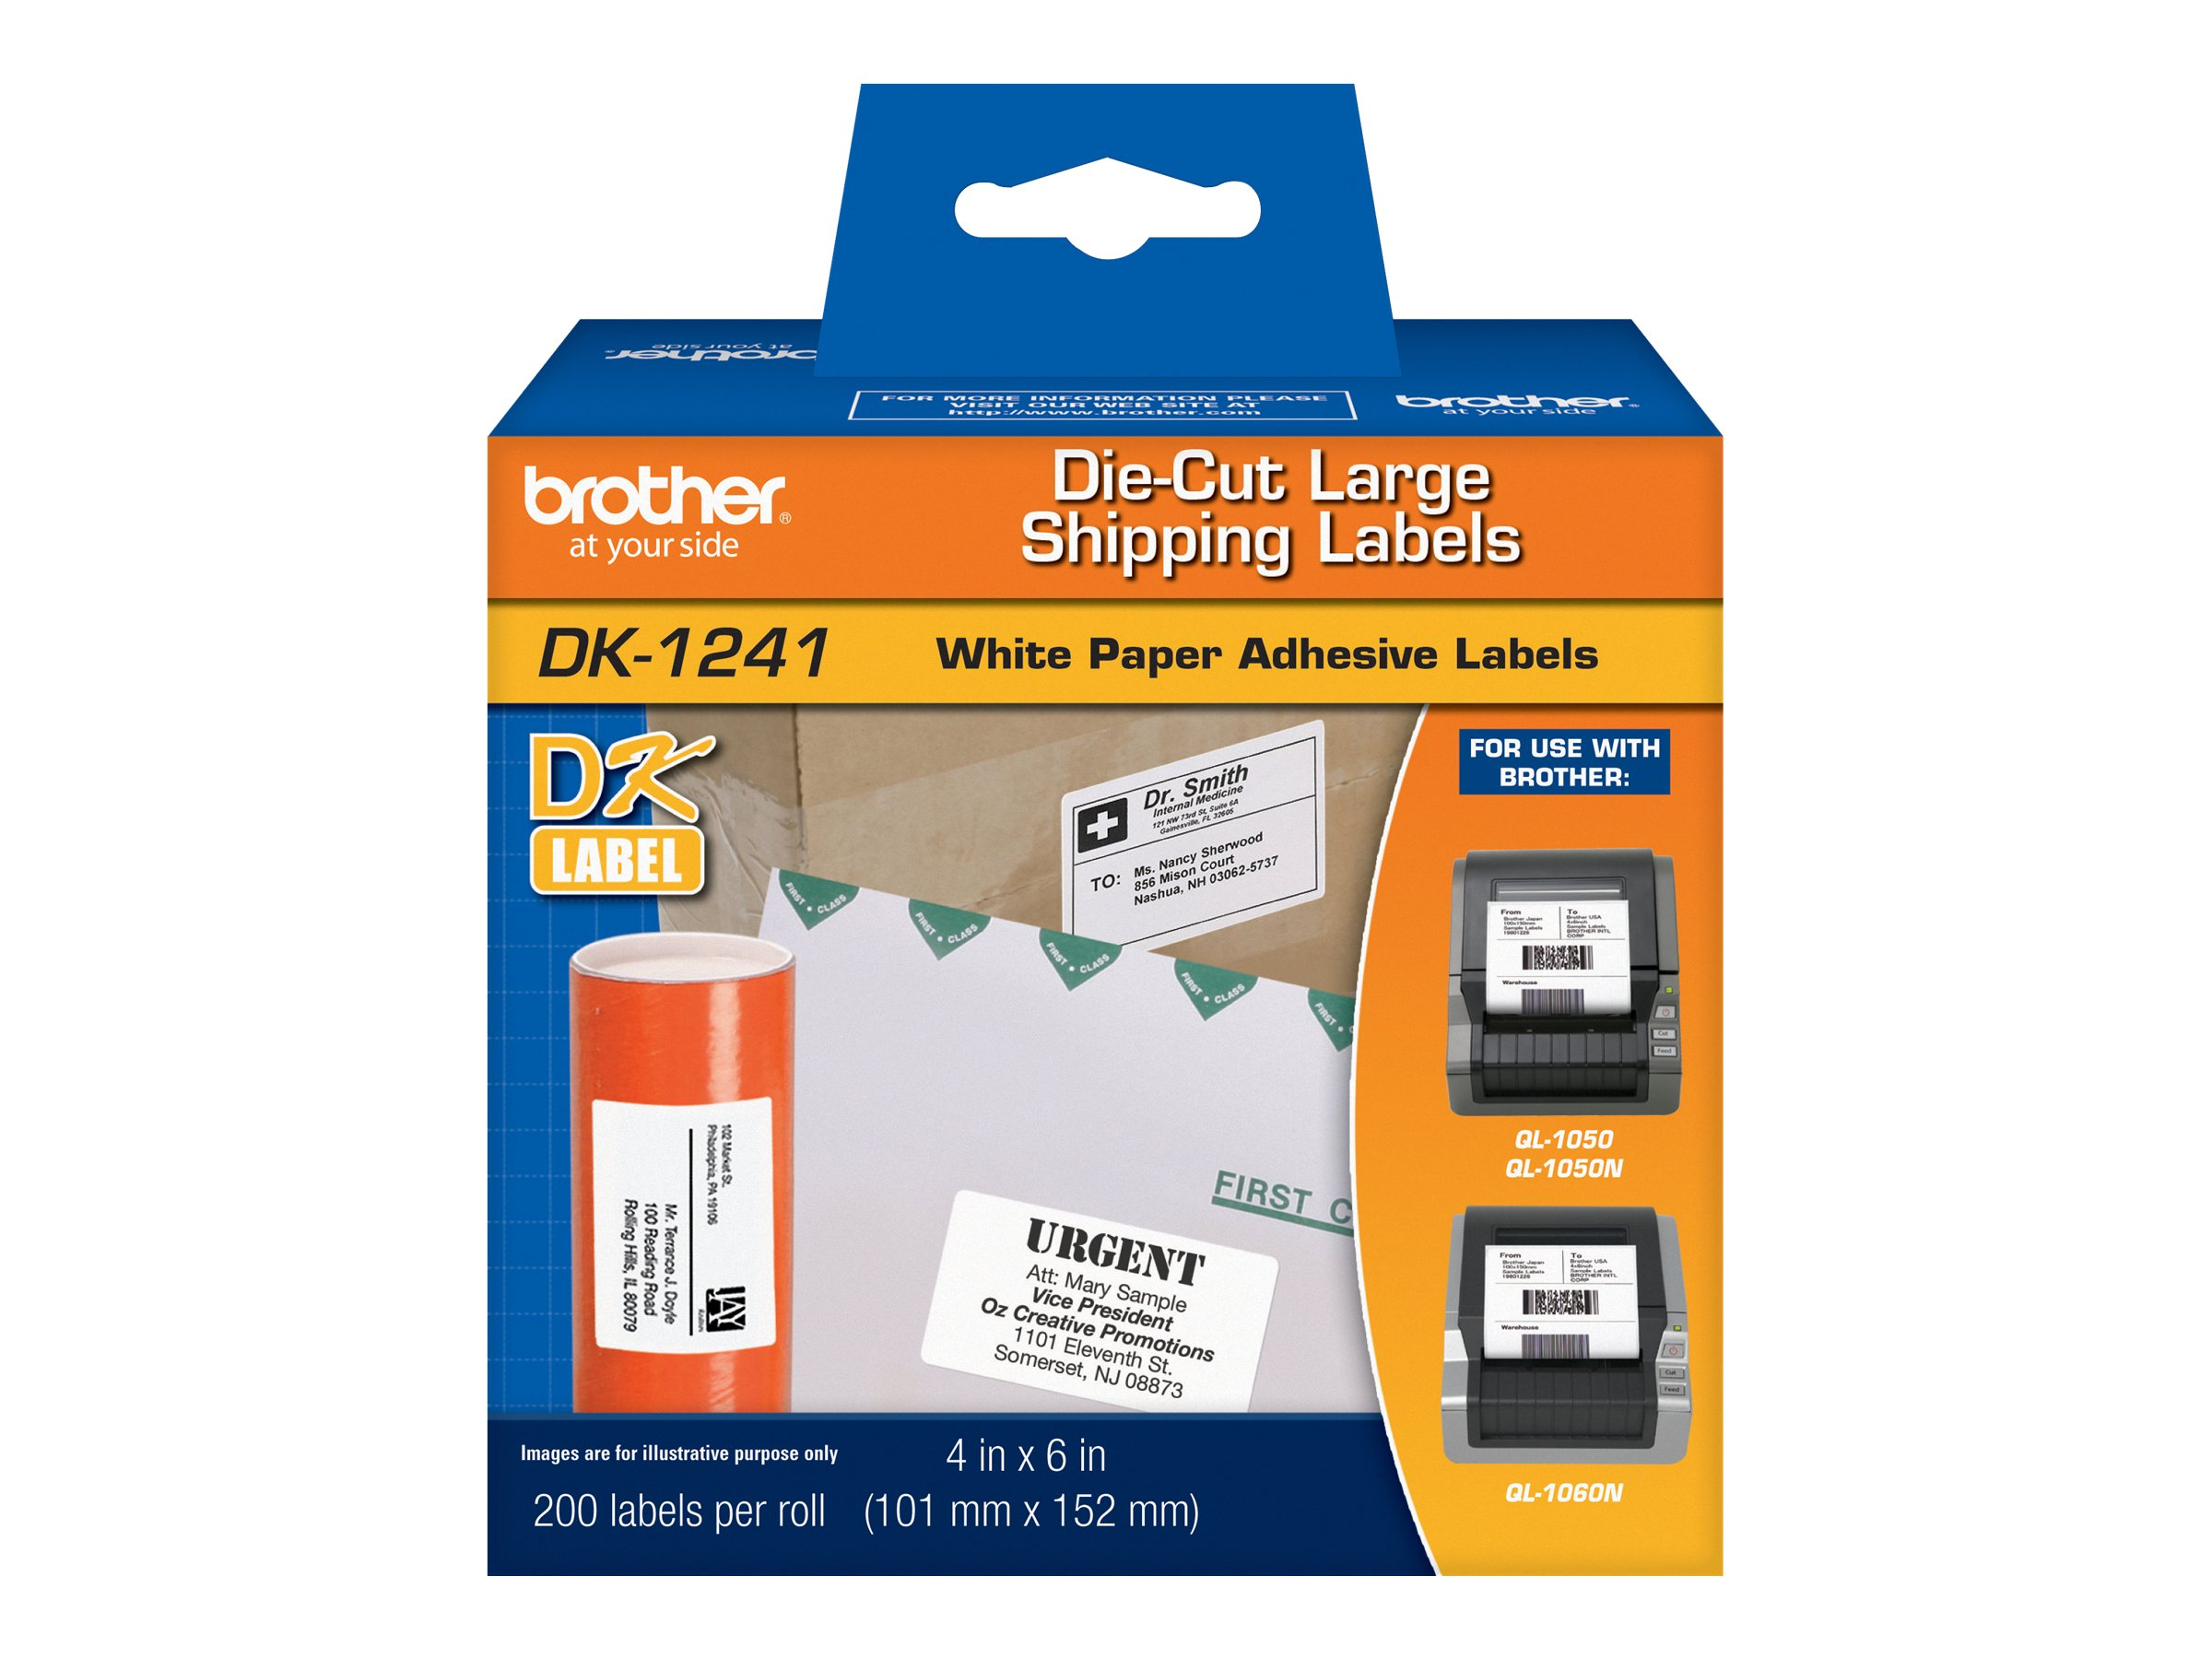 Brother 4 x 6 DK1241 Large Shipping Labels for QL-1050 QL-1060N (200 labels roll), DK1241, 7641118, Paper, Labels & Other Print Media